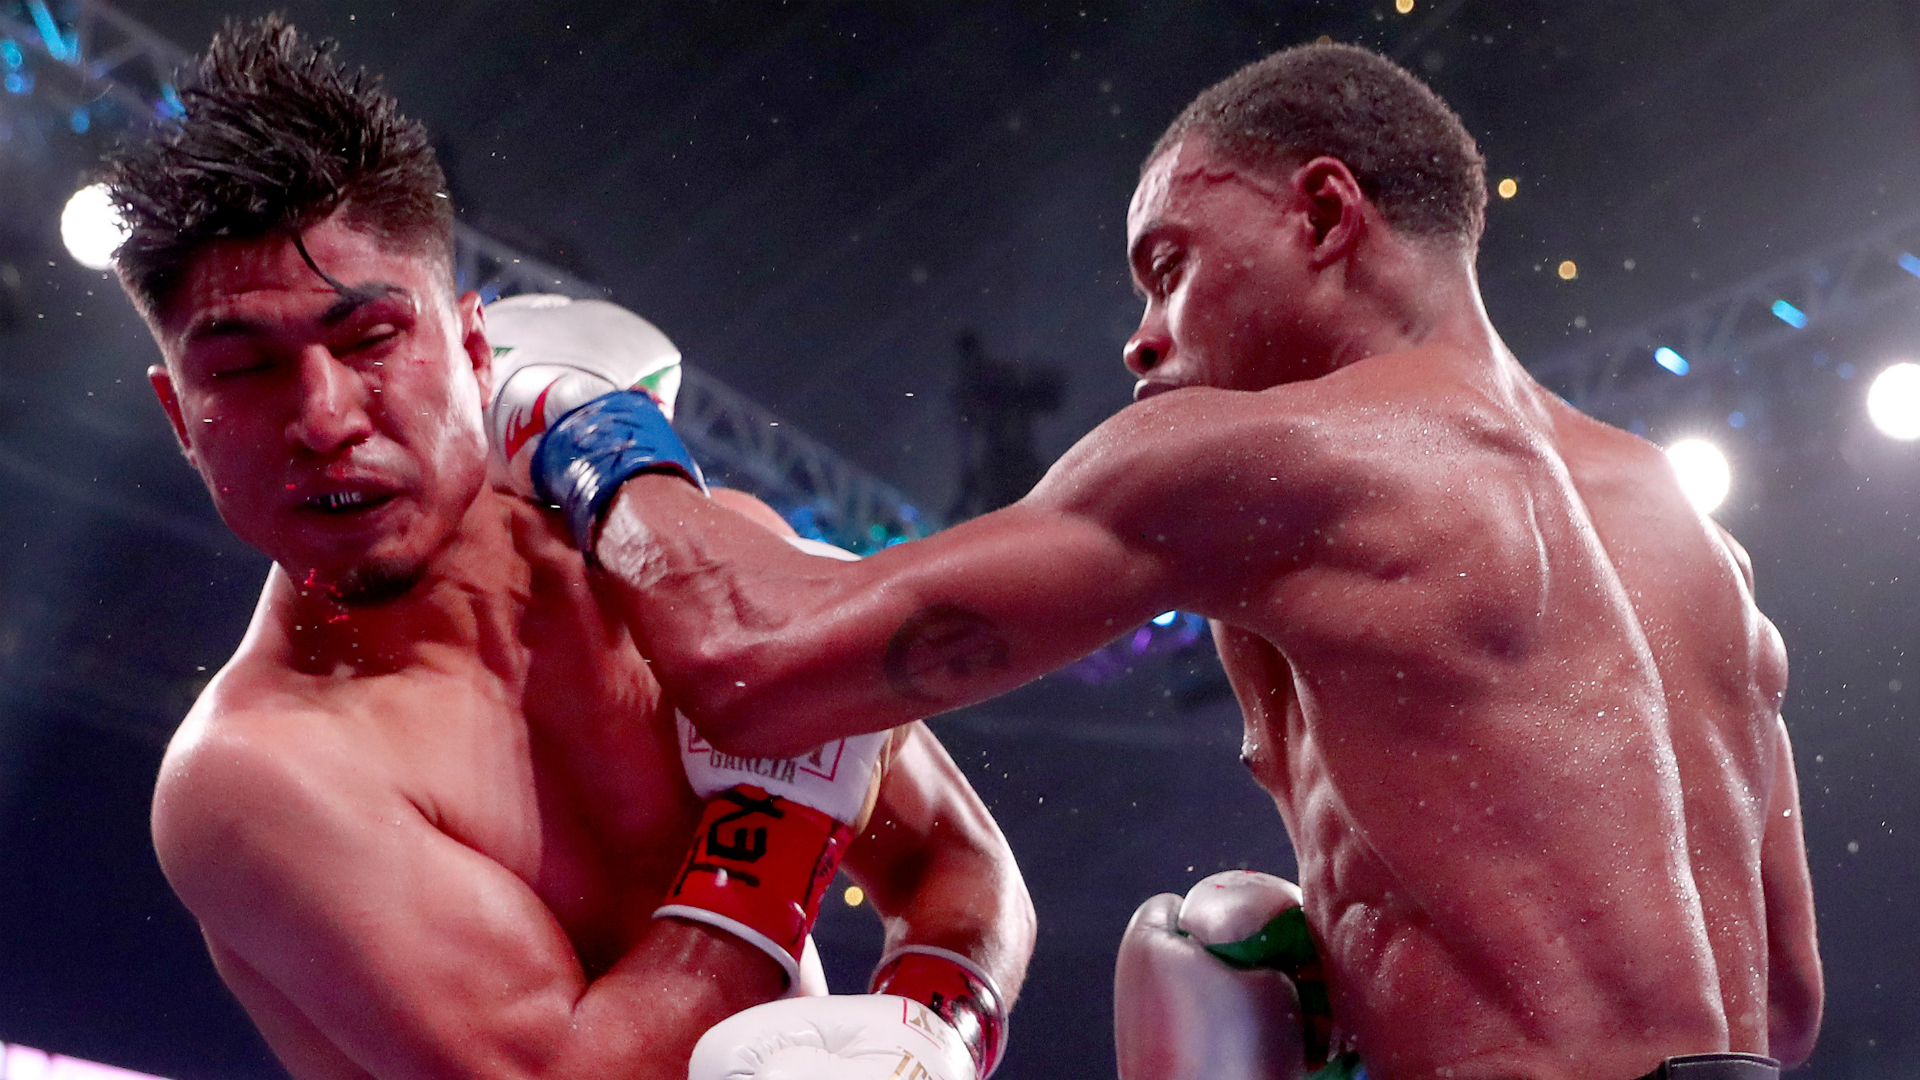 Errol Spence Jr. calls out Manny Pacquiao after dominating Mikey Garcia